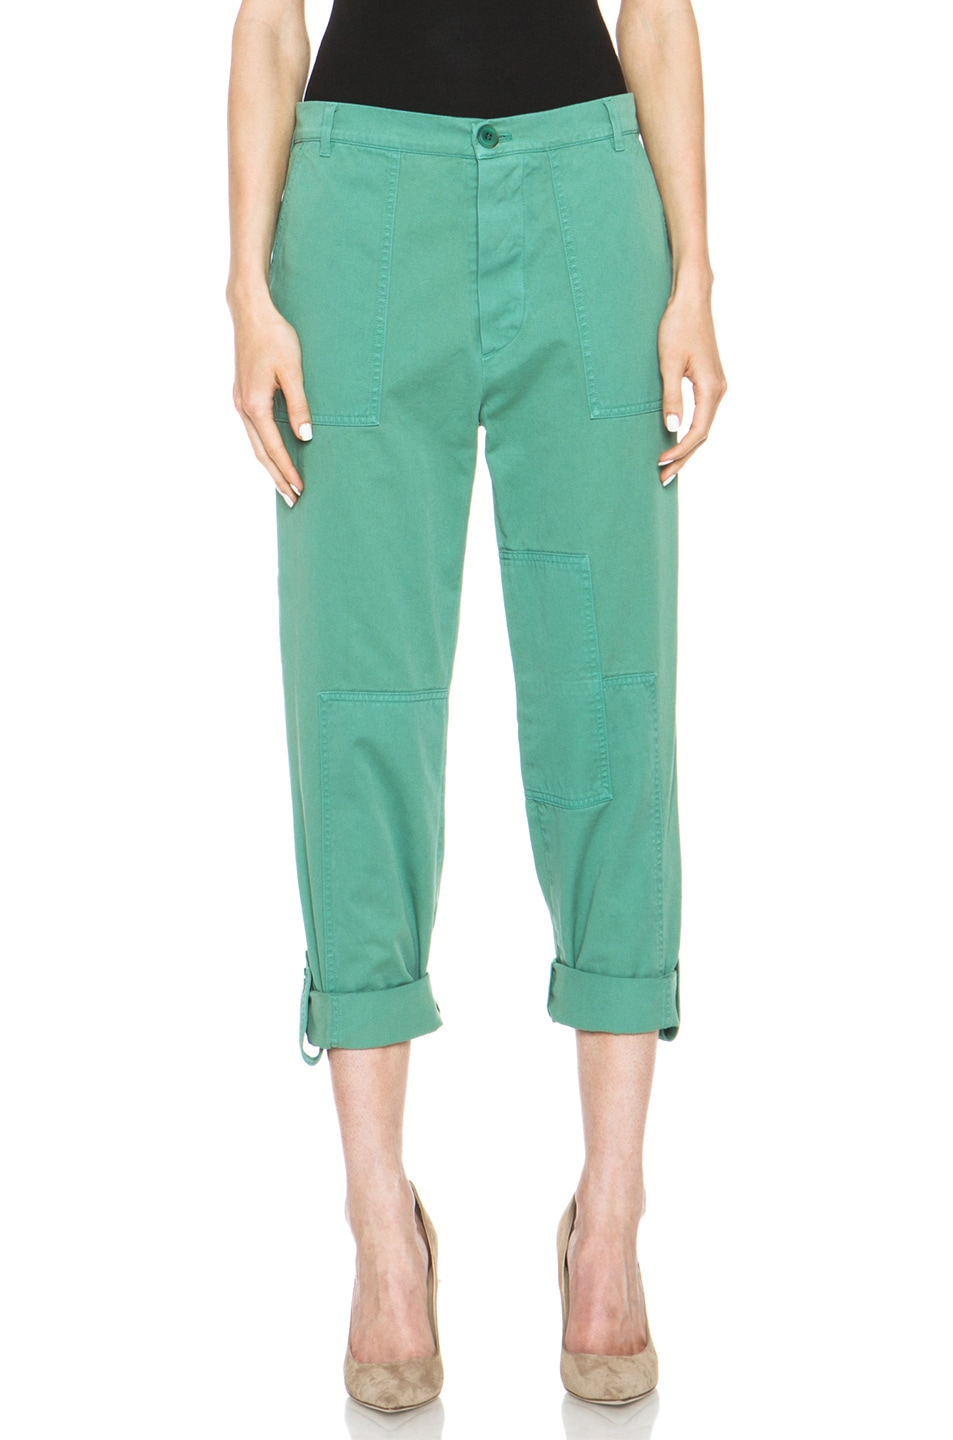 Image 1 of Boy. by Band of Outsiders Chino Cotton Liz Pant in Green